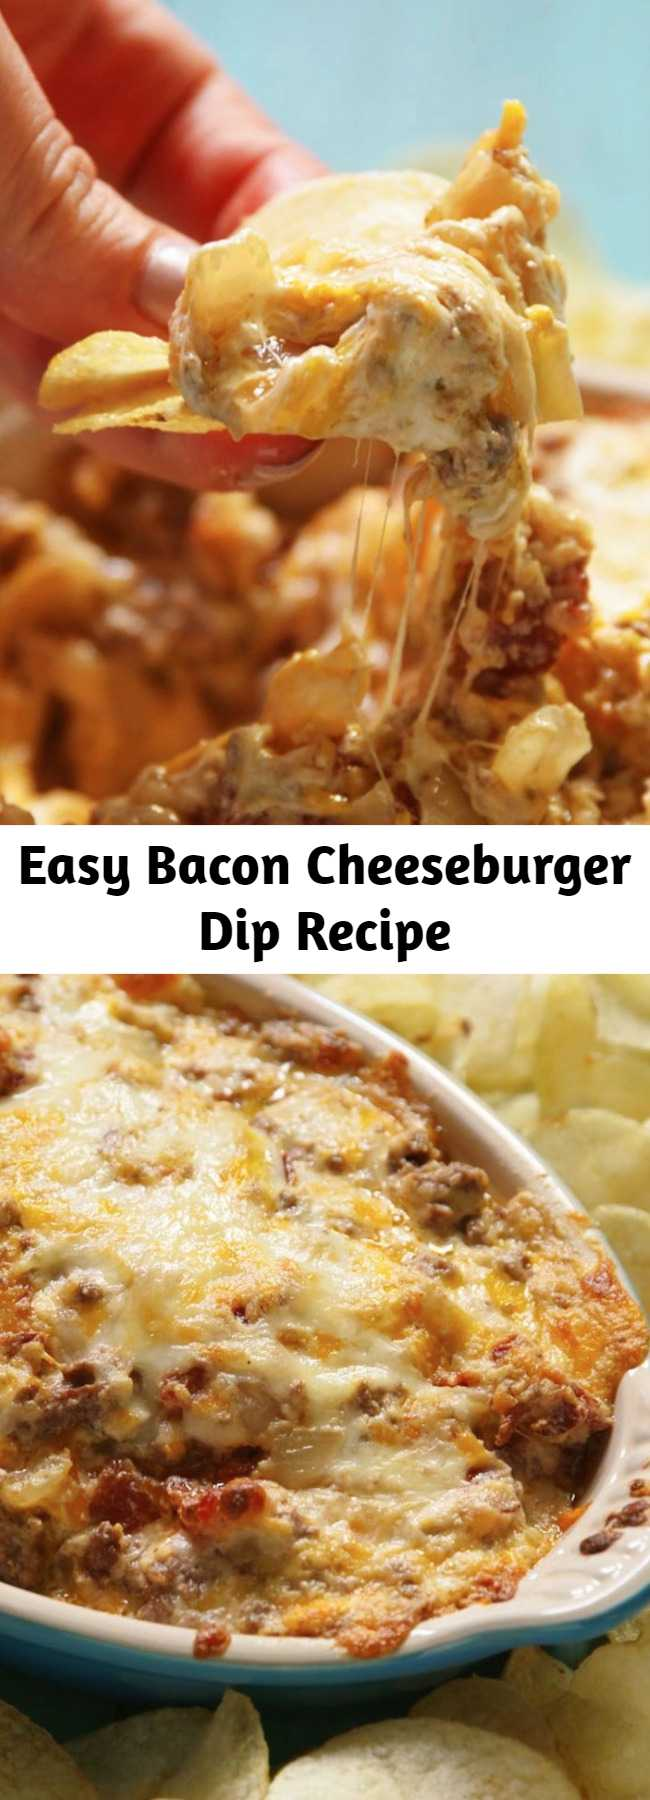 Easy Bacon Cheeseburger Dip Recipe - Obsessed with burgers? Us, too. This easy and super cheesy dip is loaded with ground beef, onion, Worcestershire sauce. And we dip chips in it because this is America and we can do what we want.